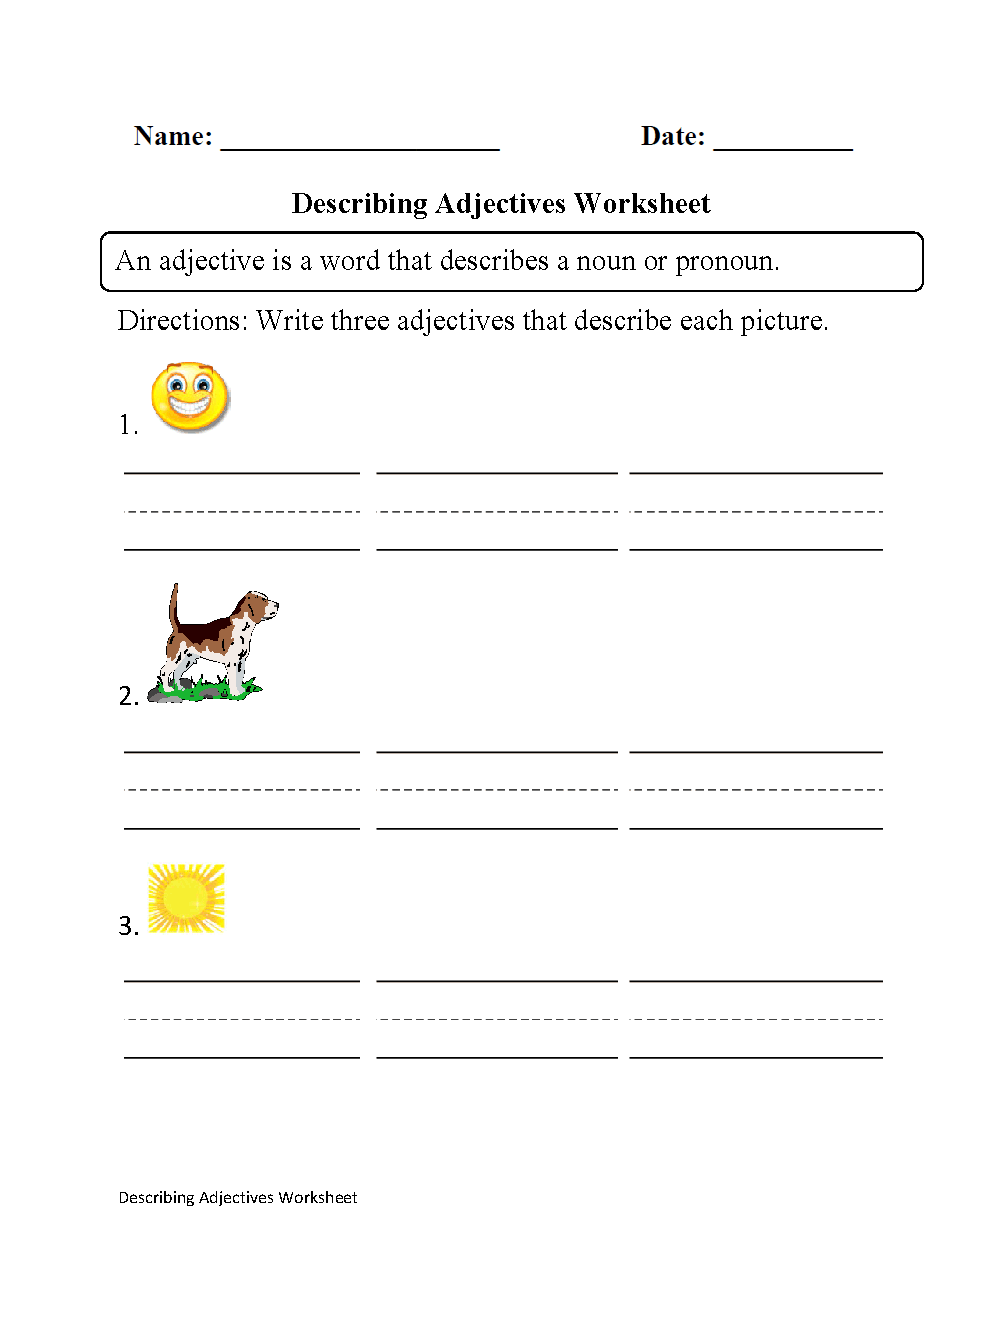 Regular Adjectives Worksheets | Describing Adjectives ...